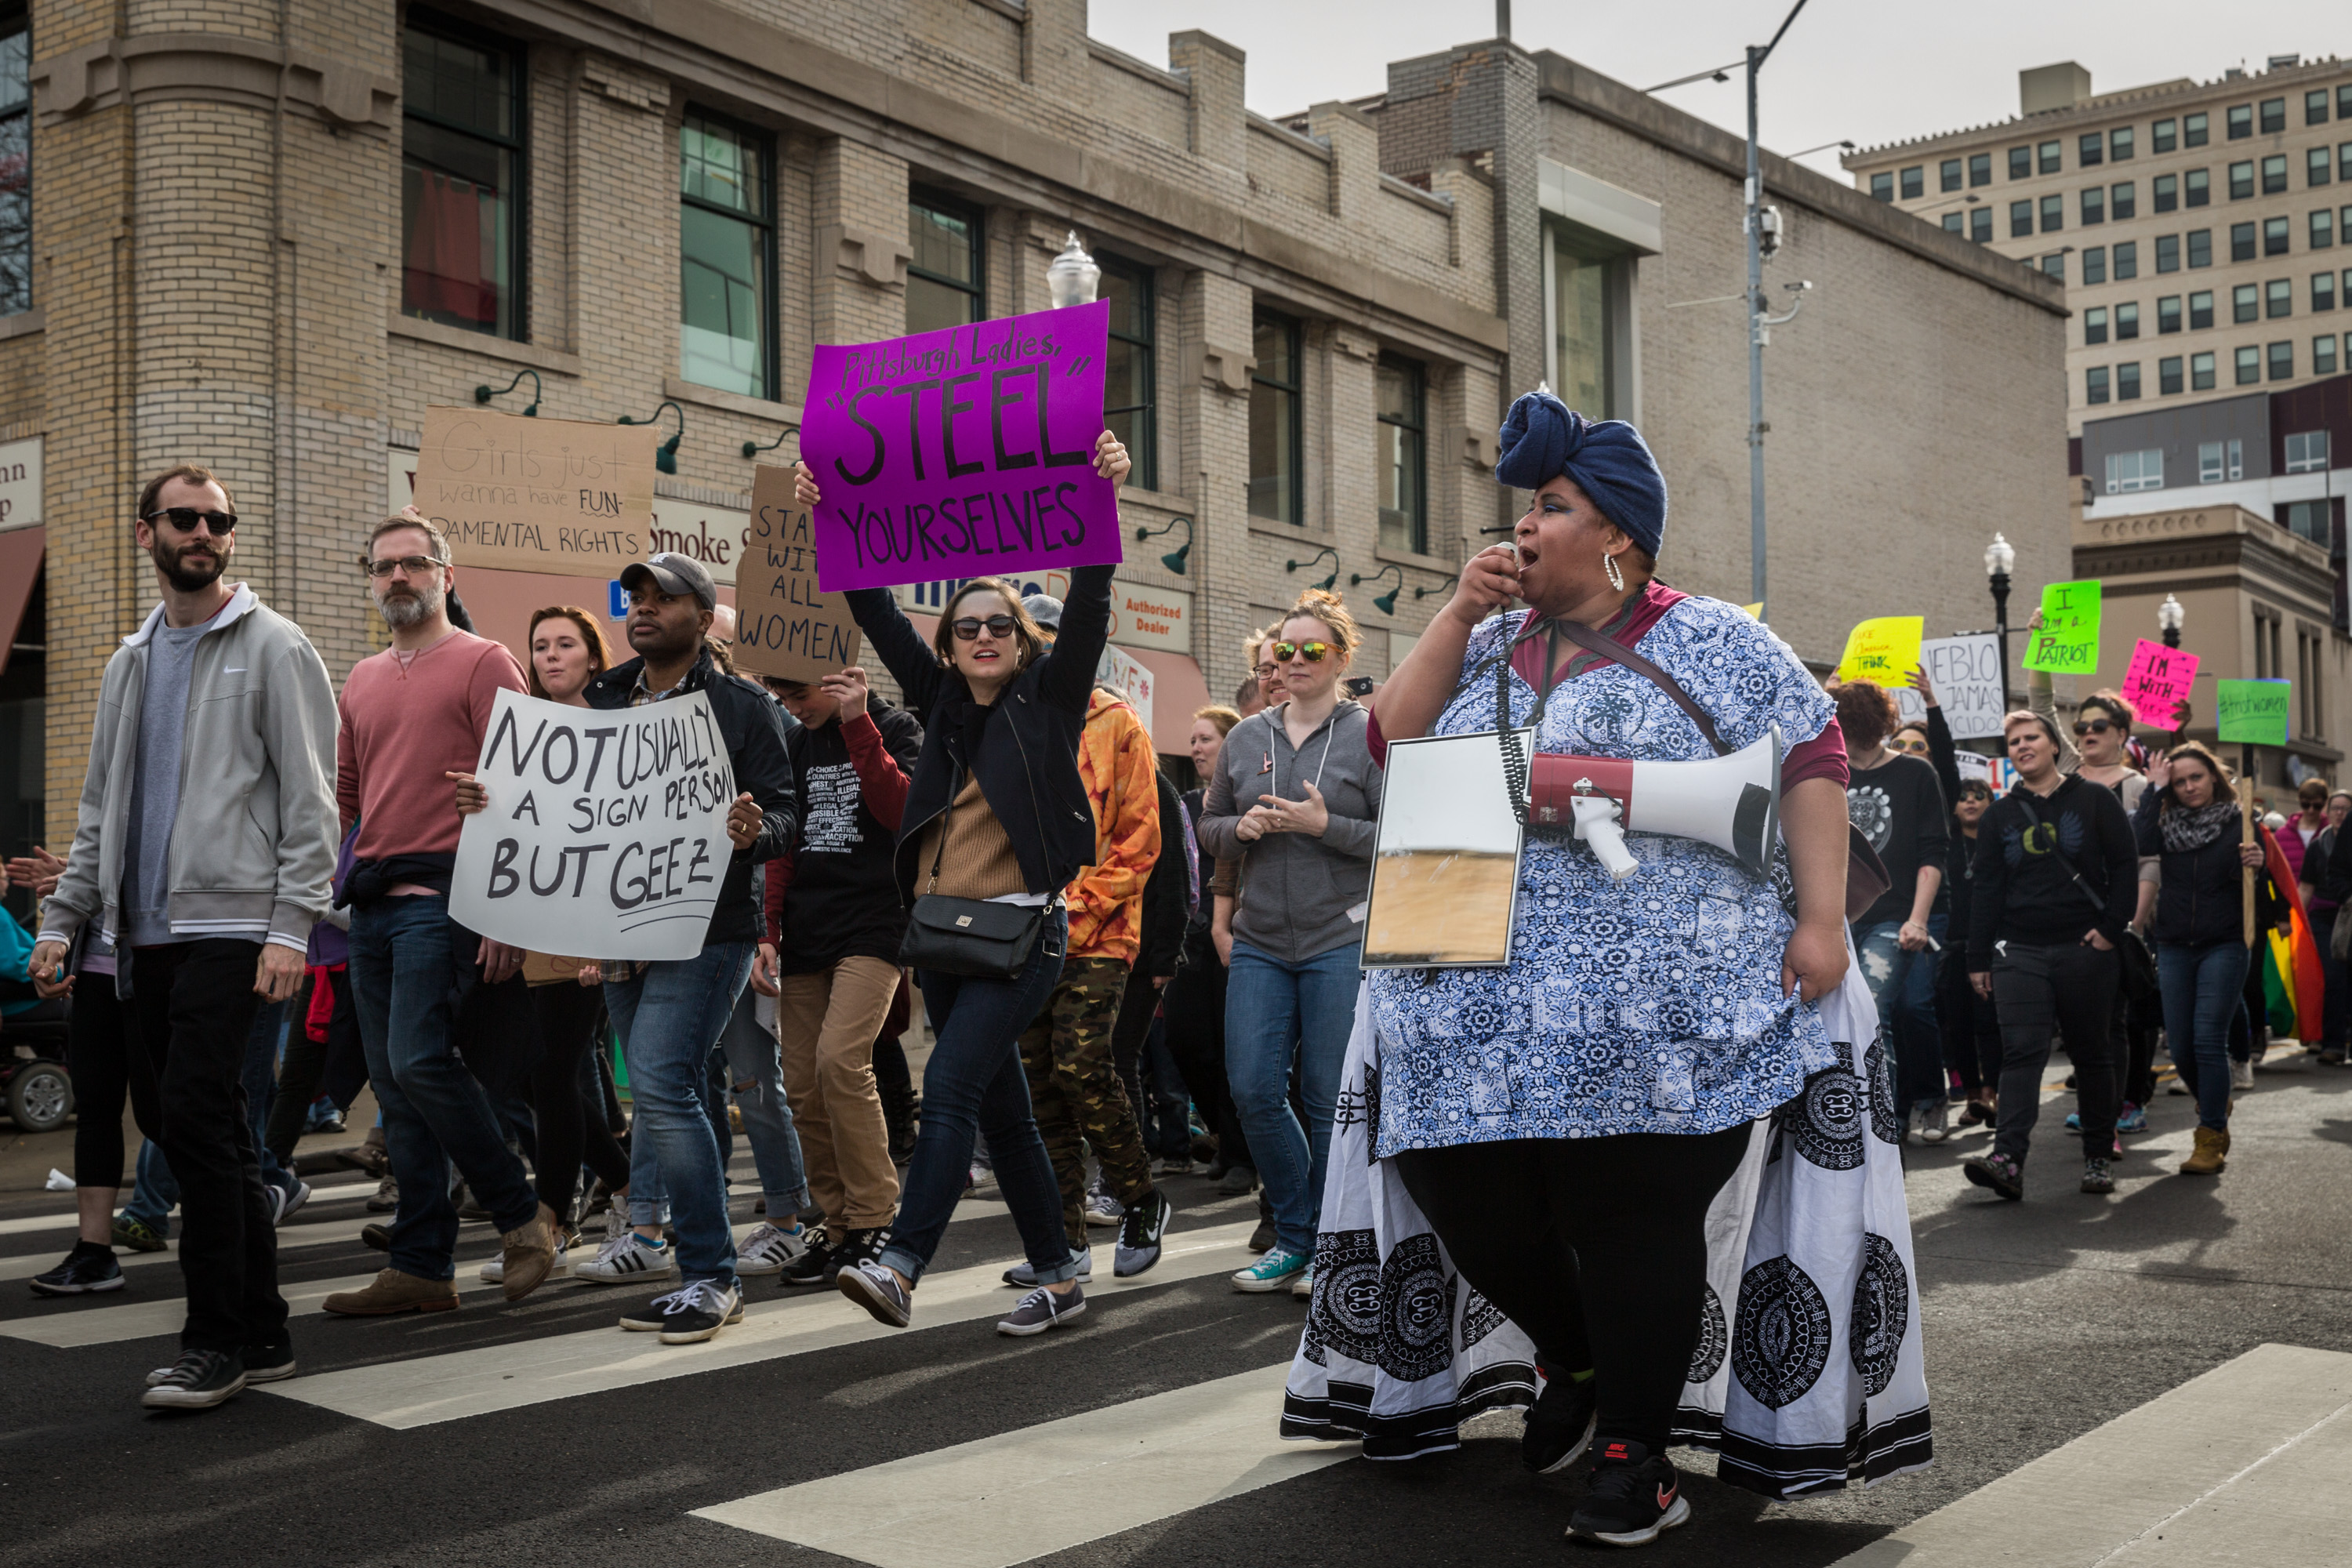 Celeste Scott, one of the organizers for the Women's March held in East Liberty, leads the crowd of over 1,000 on Highland Ave. Saturday, January 21, 2017.More than 1,000 people turned out to support the intersectional march held in East Liberty on Saturday, January, 21, 2017. The march was created in response to what the organizers called a lack of diversity and inclusion in the organization of the Women's March being held Downtown Pittsburgh at the same time. (Photo by Maranie Staab for PublicSource)